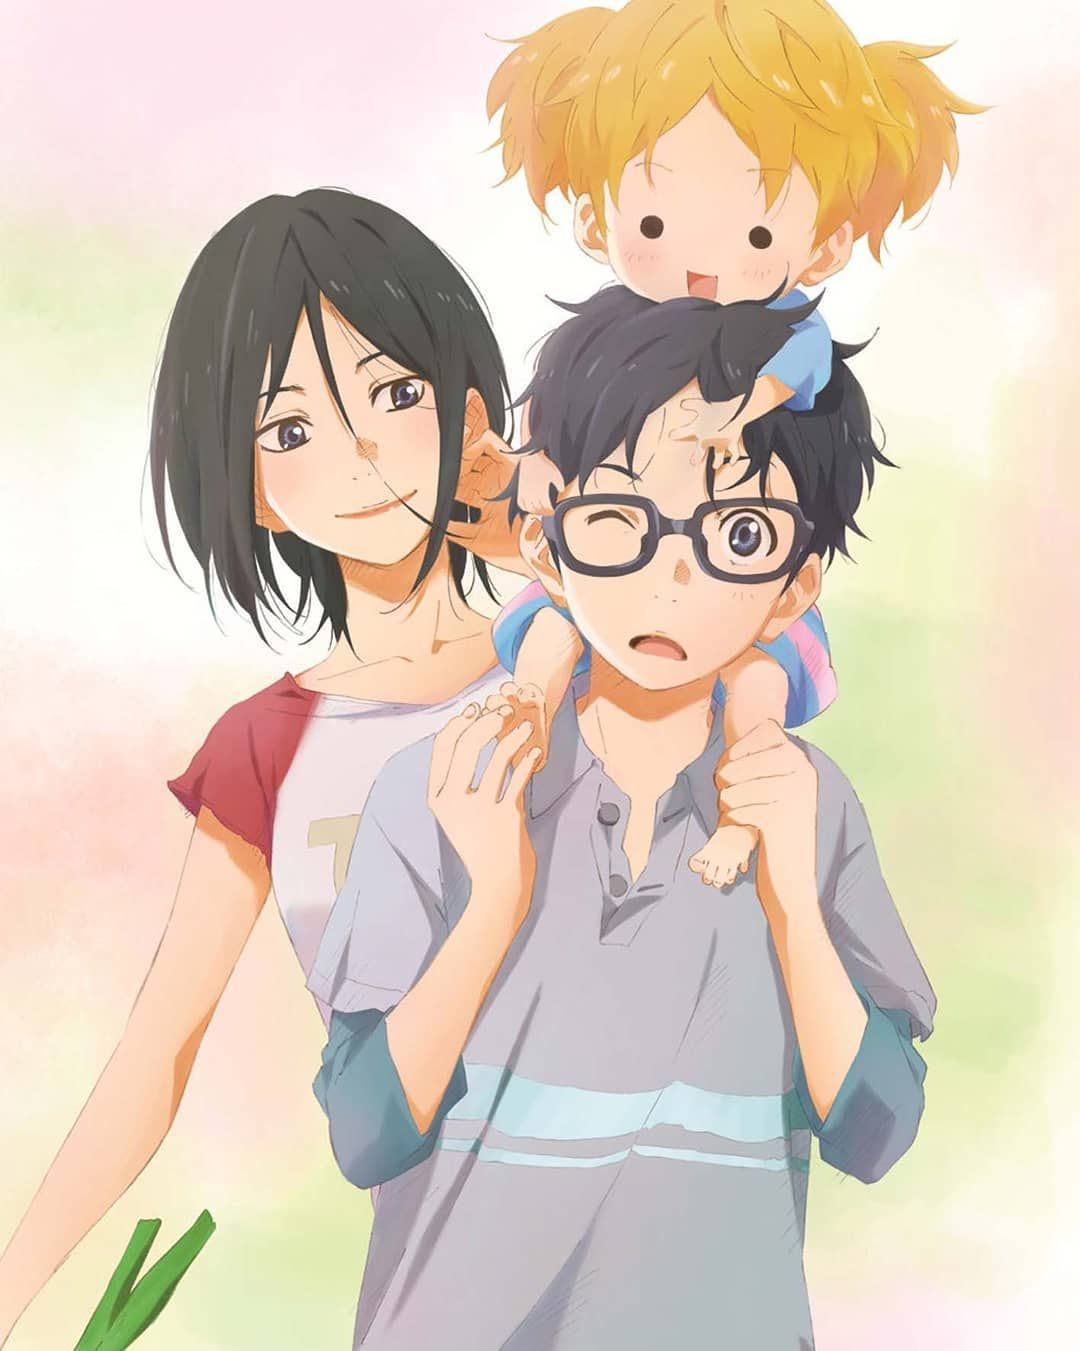 Kousei Hiroko And Koharu Your Lie In April Your Lie In April You Lied Anime Shows